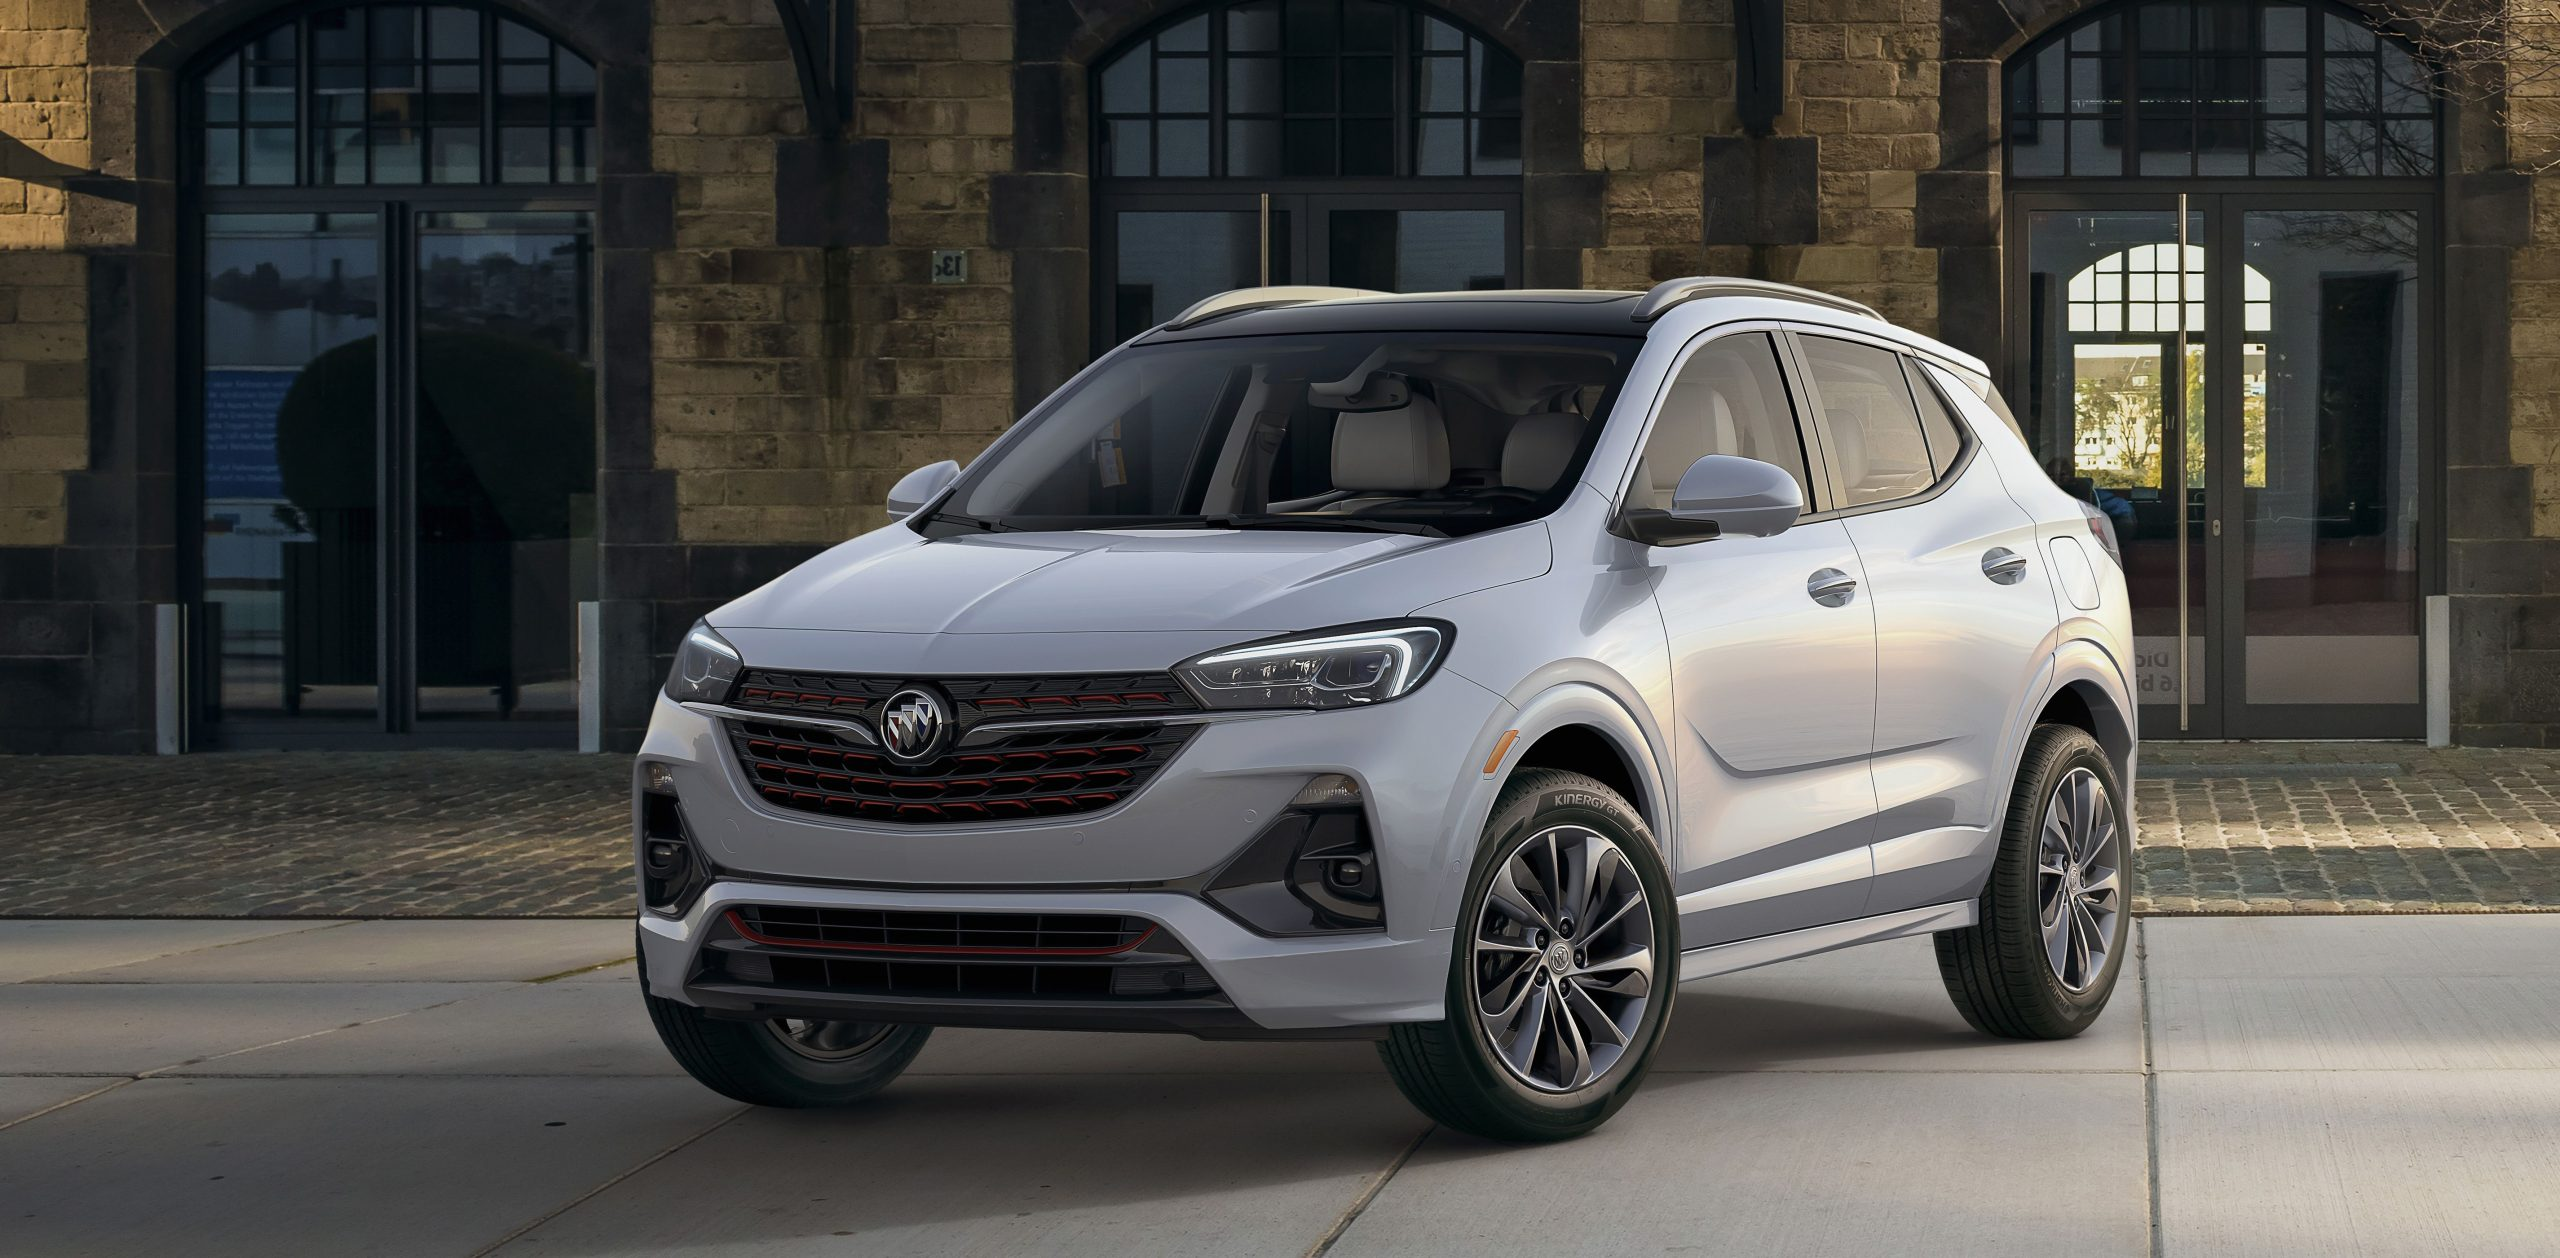 2020 Buick Encore Gx: What We Know So Far New 2021 Buick Encore Essence Engine, Awd, Msrp